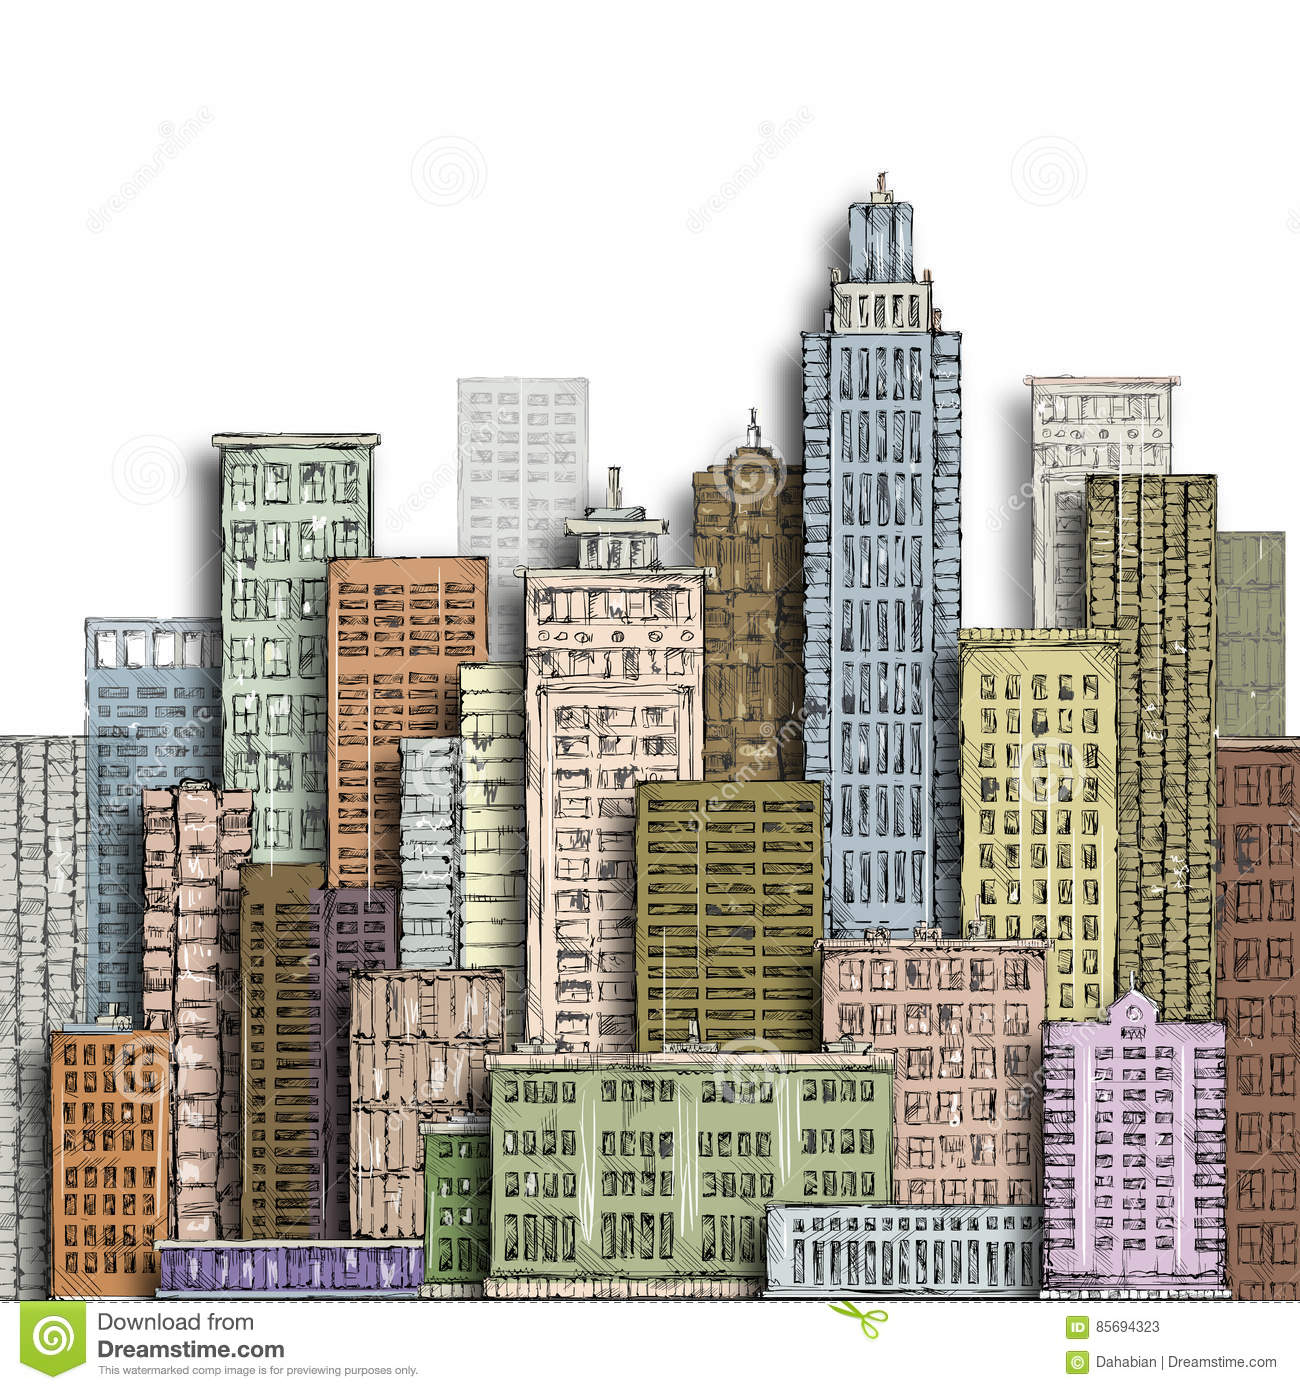 Hand drawn big city. Vintage illustration with architecture, skyscrapers, megapolis, buildings, downtown.